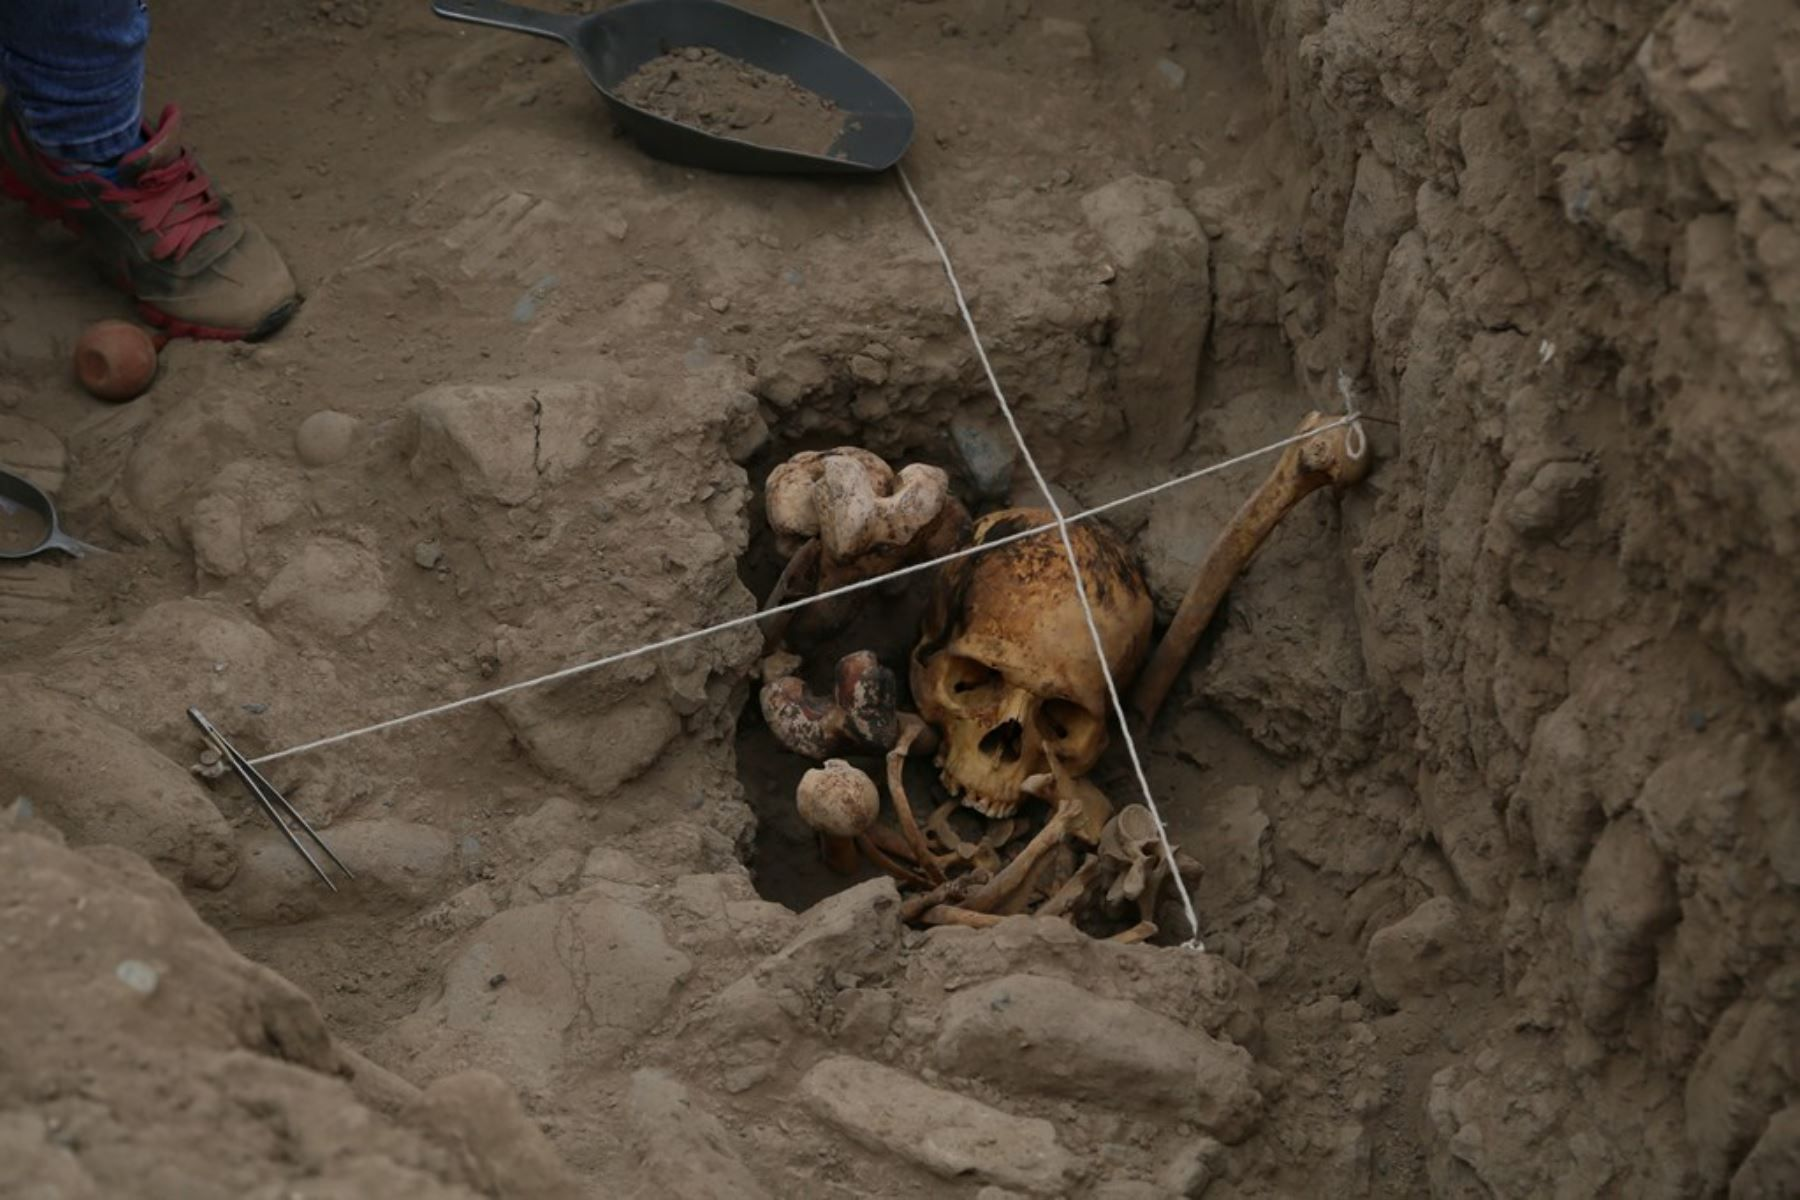 The remains of four mummies of the pre-Inca Ychsma people have been unearthed in the Huaca Pucllana temple in the Miraflores neighborhood of Lima